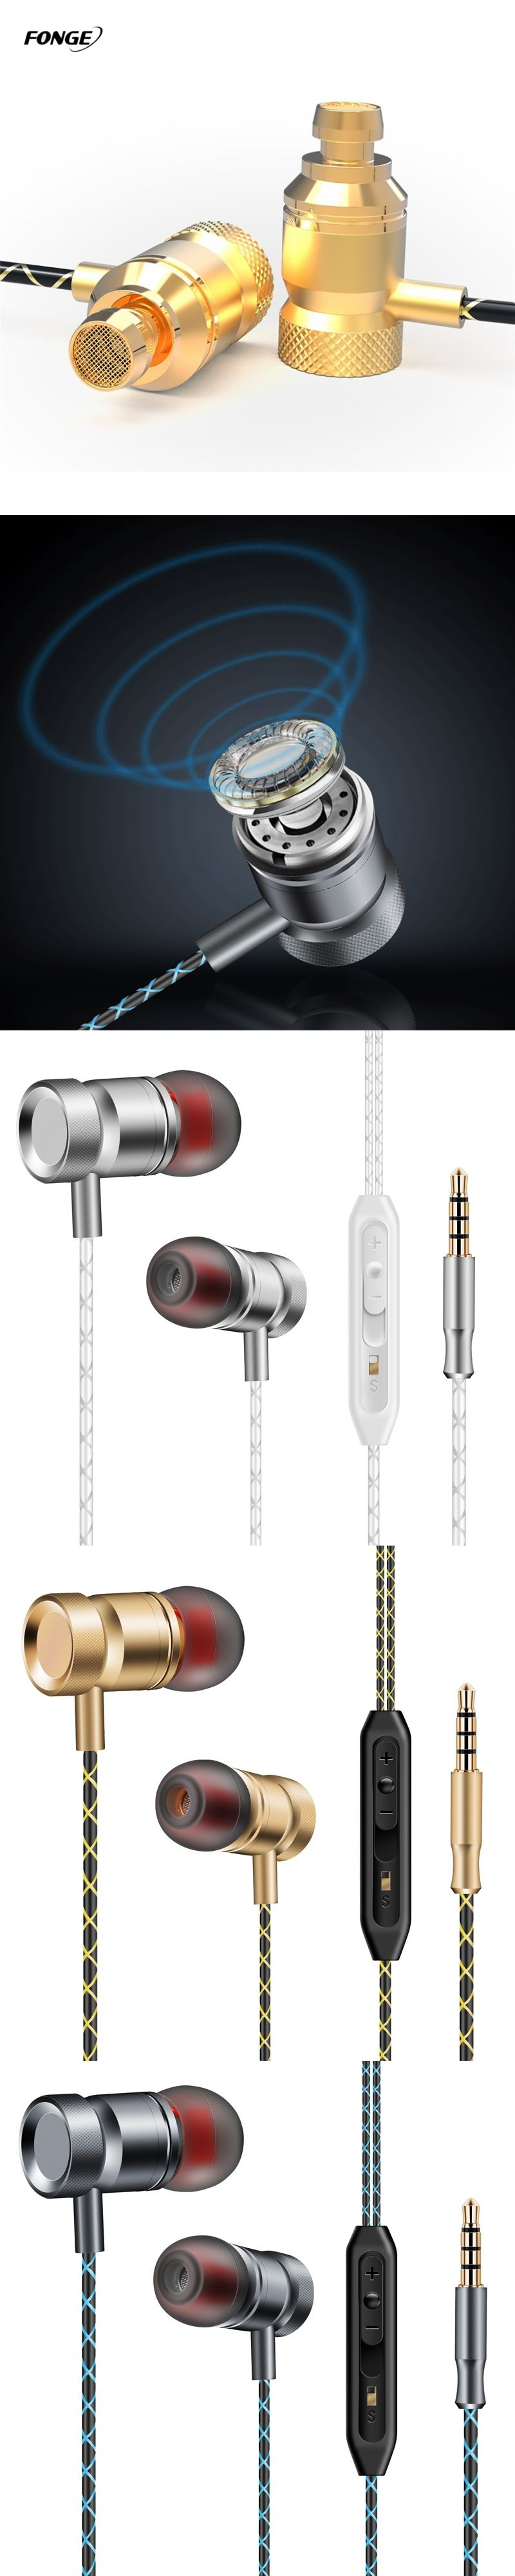 Original Fonge Piston Classic Earbuds In Ear Earphone with Microphone and Remote for Apple iOS